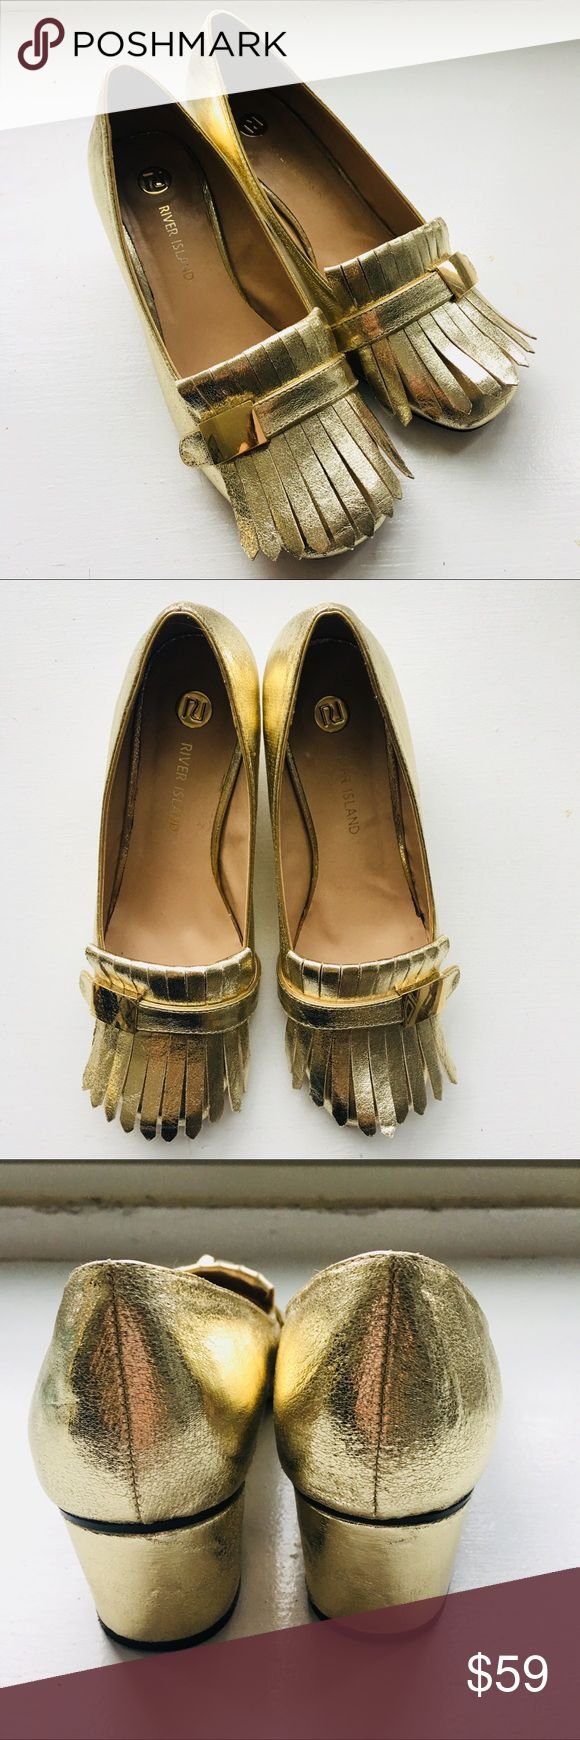 """RIVER ISLAND Gold Tassel Courtshoes size 9 Gucci Barely worn River Island gold metallic leather court shoes , loafers, with front tassels and round toe. Cropped heel height 1 1/2"""". No blemishes on upper leather, minimal wear on bottom and heel. Very similar to new version of Gucci loafers. River Island Shoes Heels"""